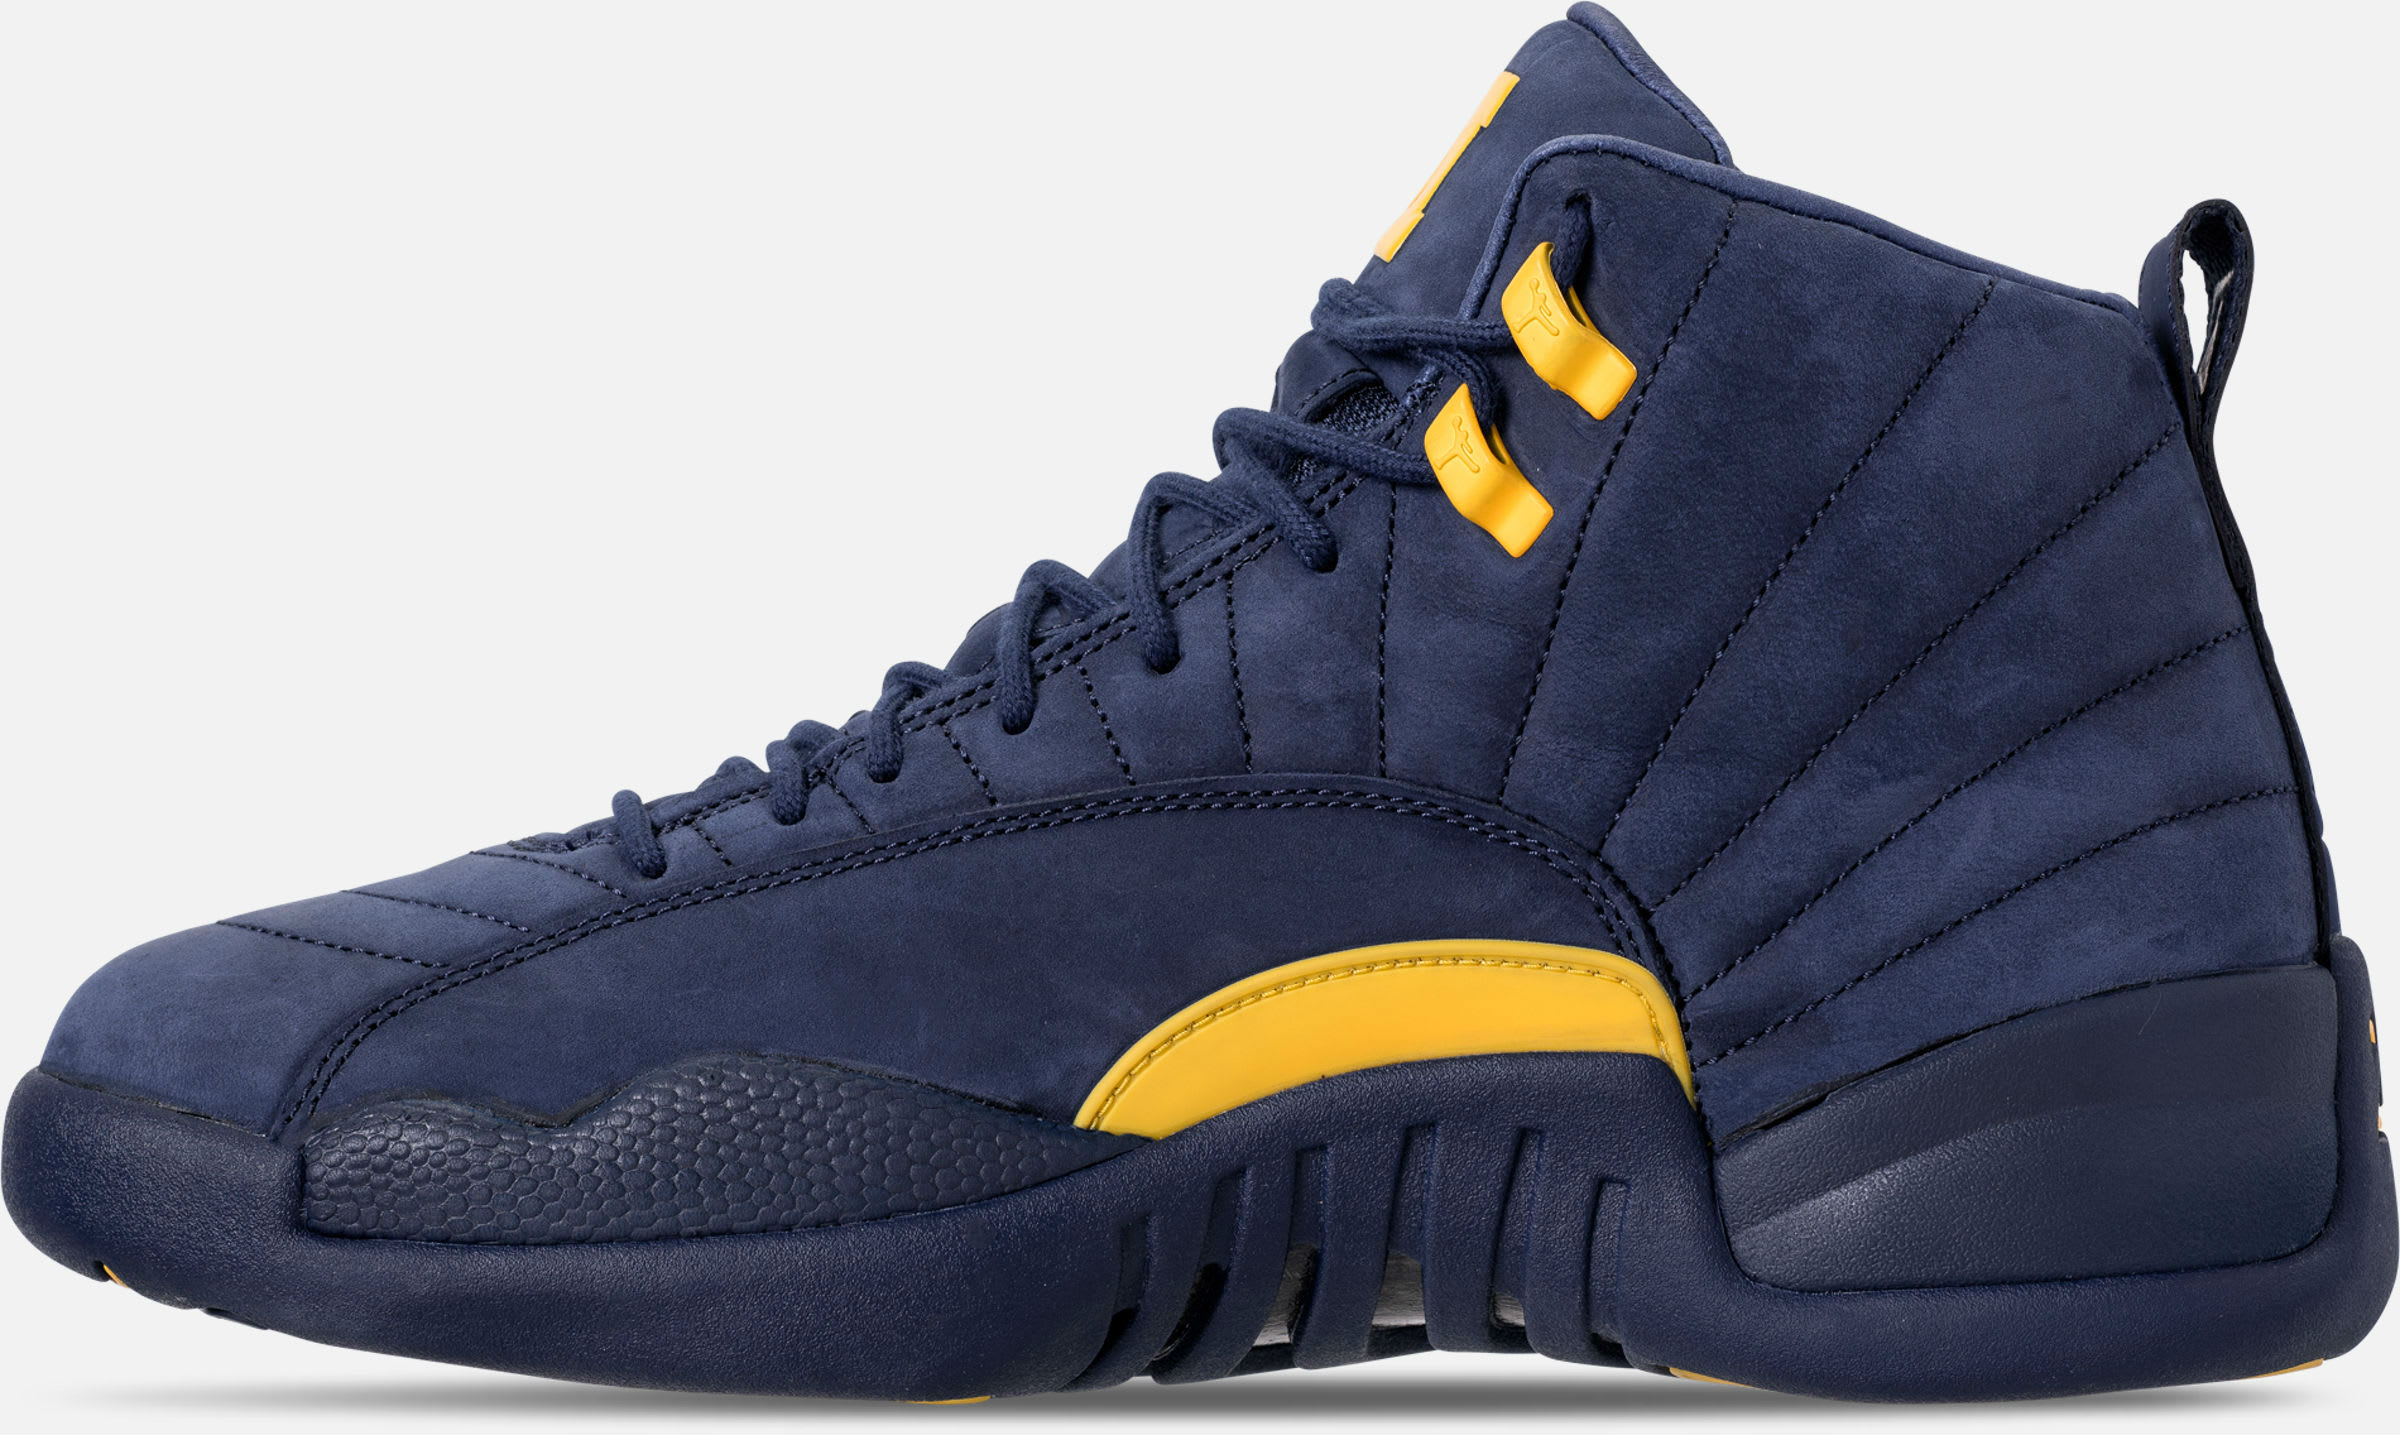 Air Jordan 12 XII Michigan Release Date BQ3180-407 Medial